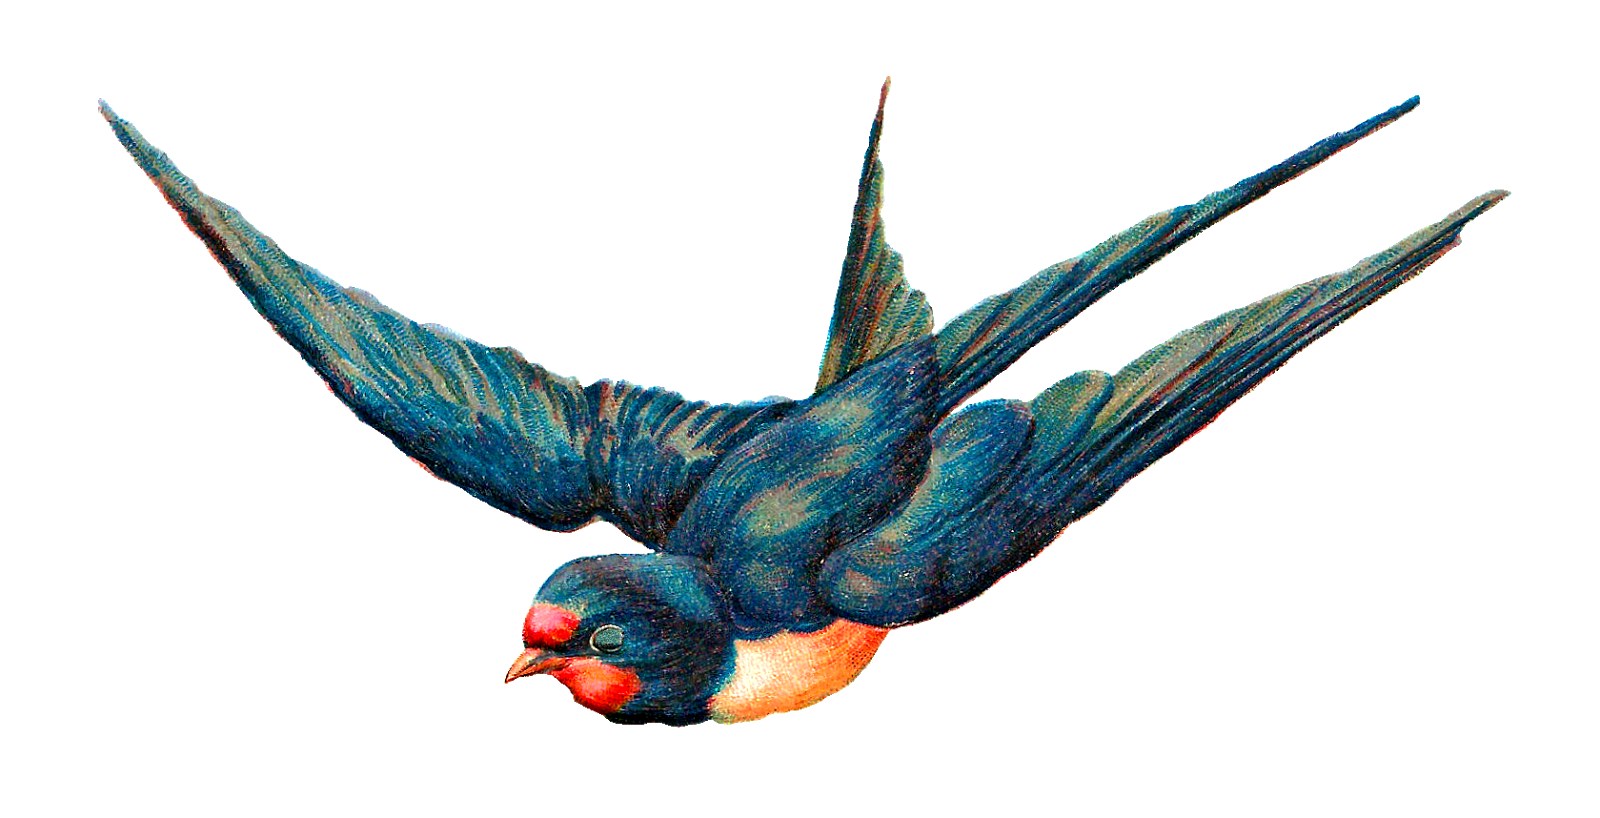 Antique Images: Free Digital Blue Bird in Flight Animal ...